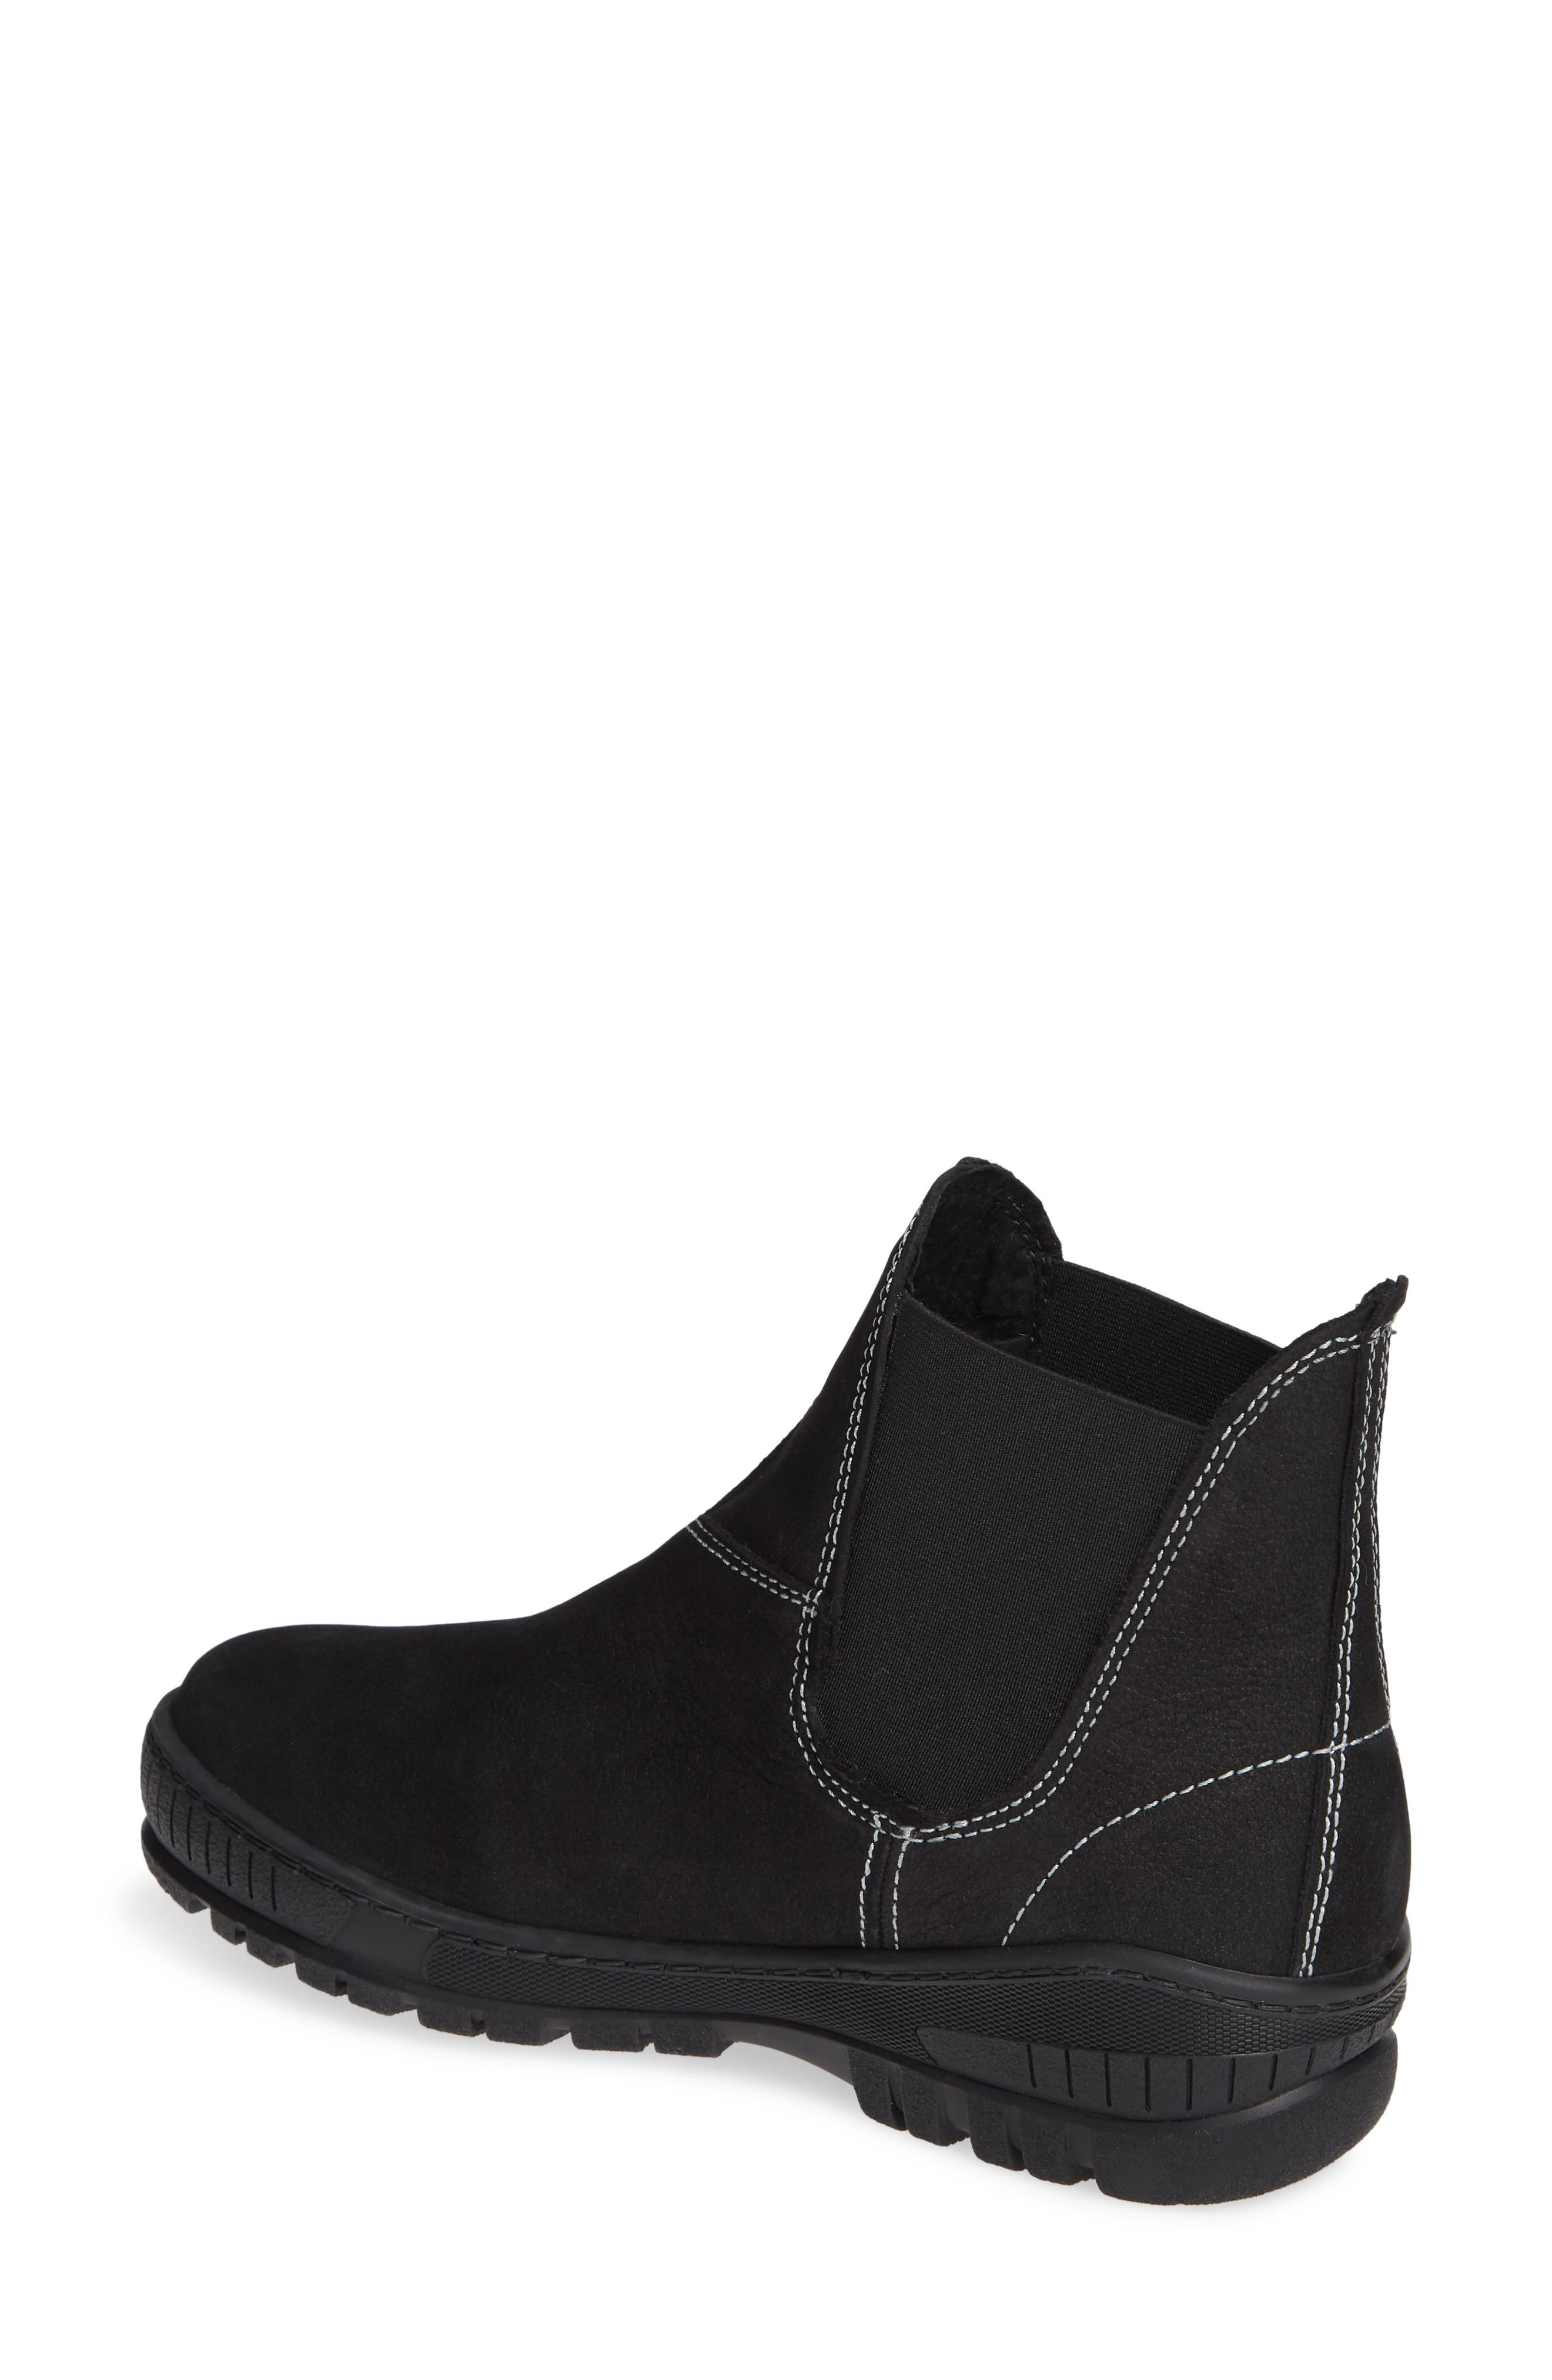 Embark Chelsea Bootie,                             Alternate thumbnail 2, color,                             BLACK LEATHER